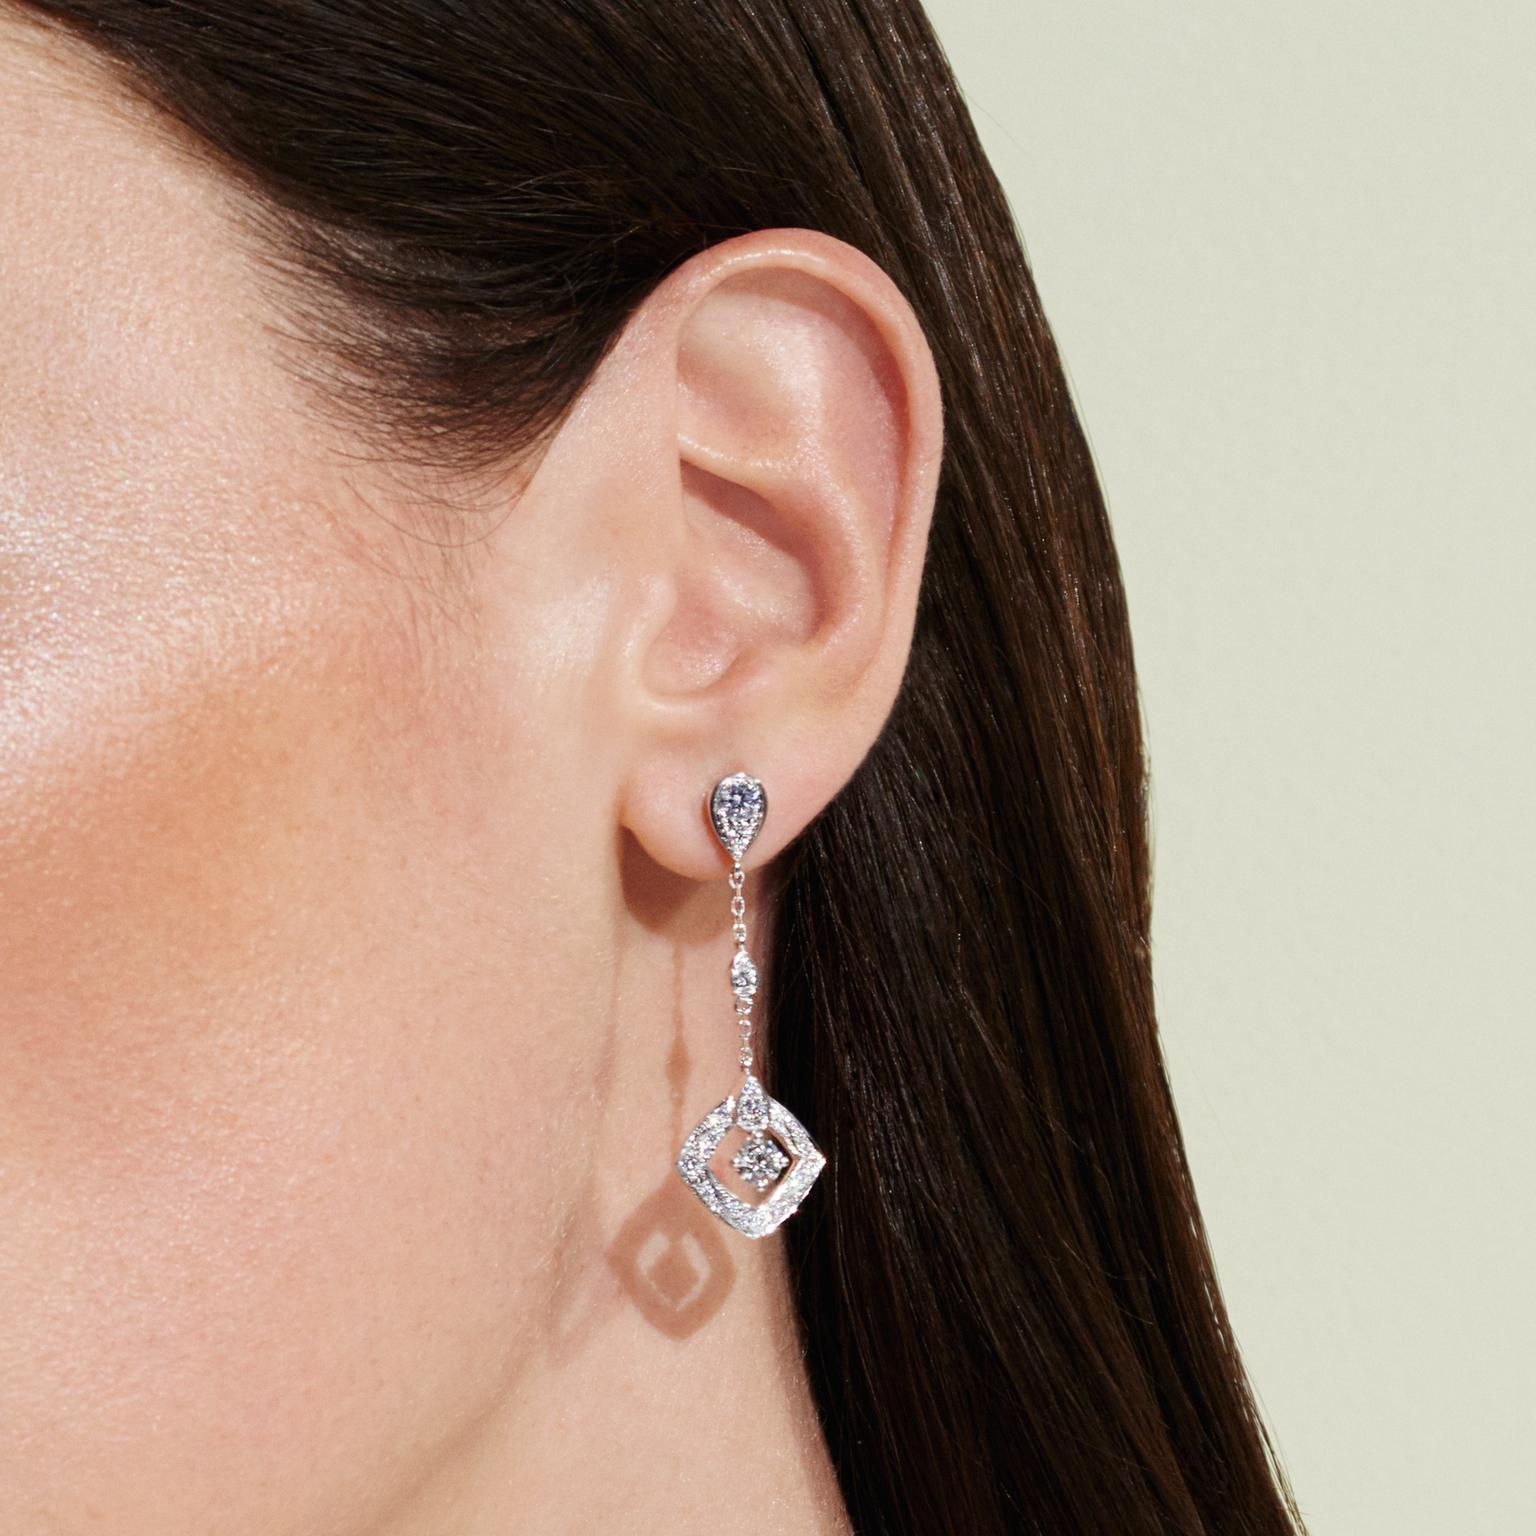 Chaumet Josephine Diptyque diamond earrings